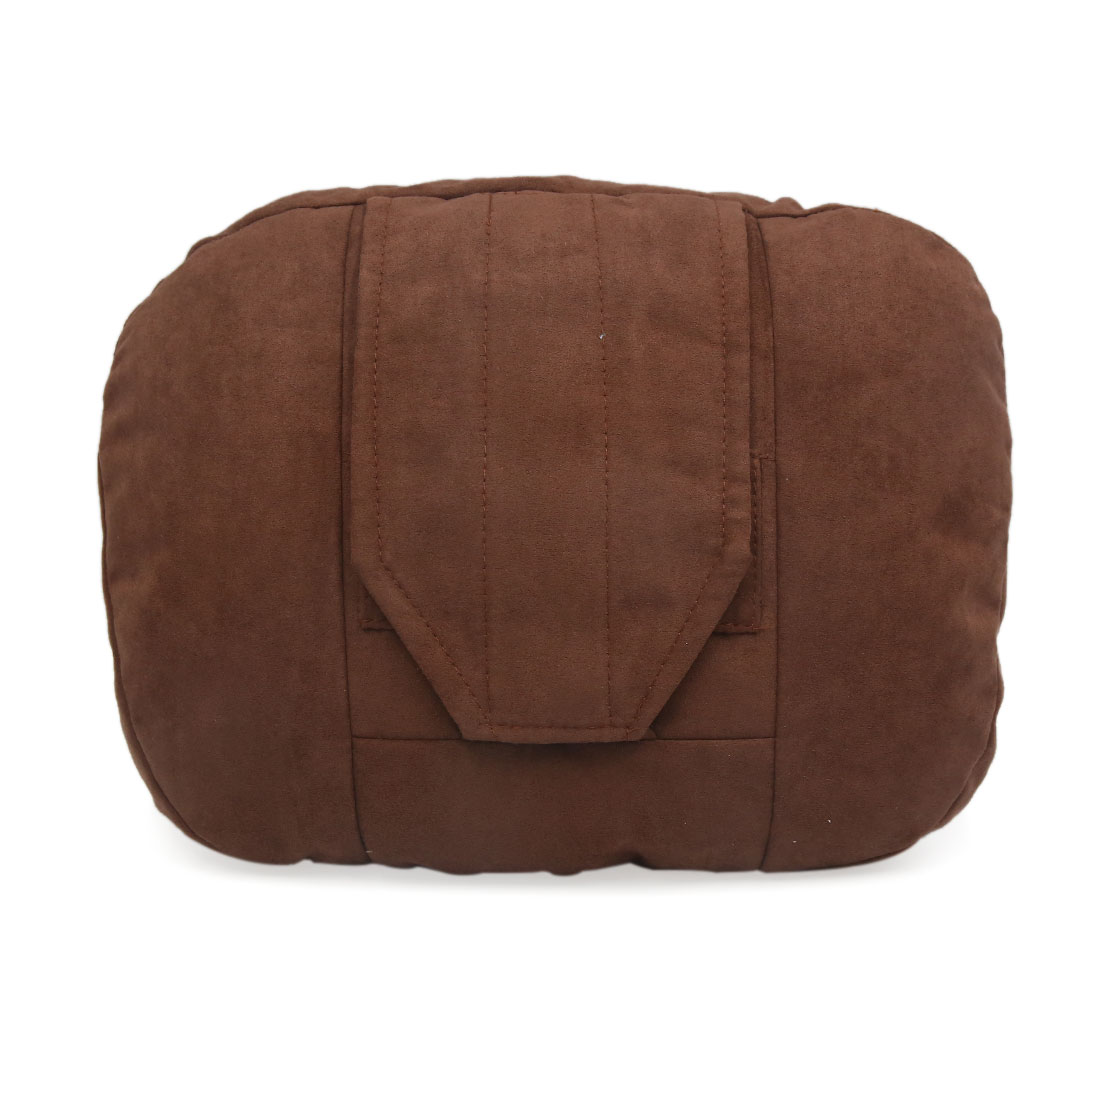 Brown Memory Foam Padding Car Seat Headrest Pillow Neck Rest Support Cushion Pad - image 3 of 4